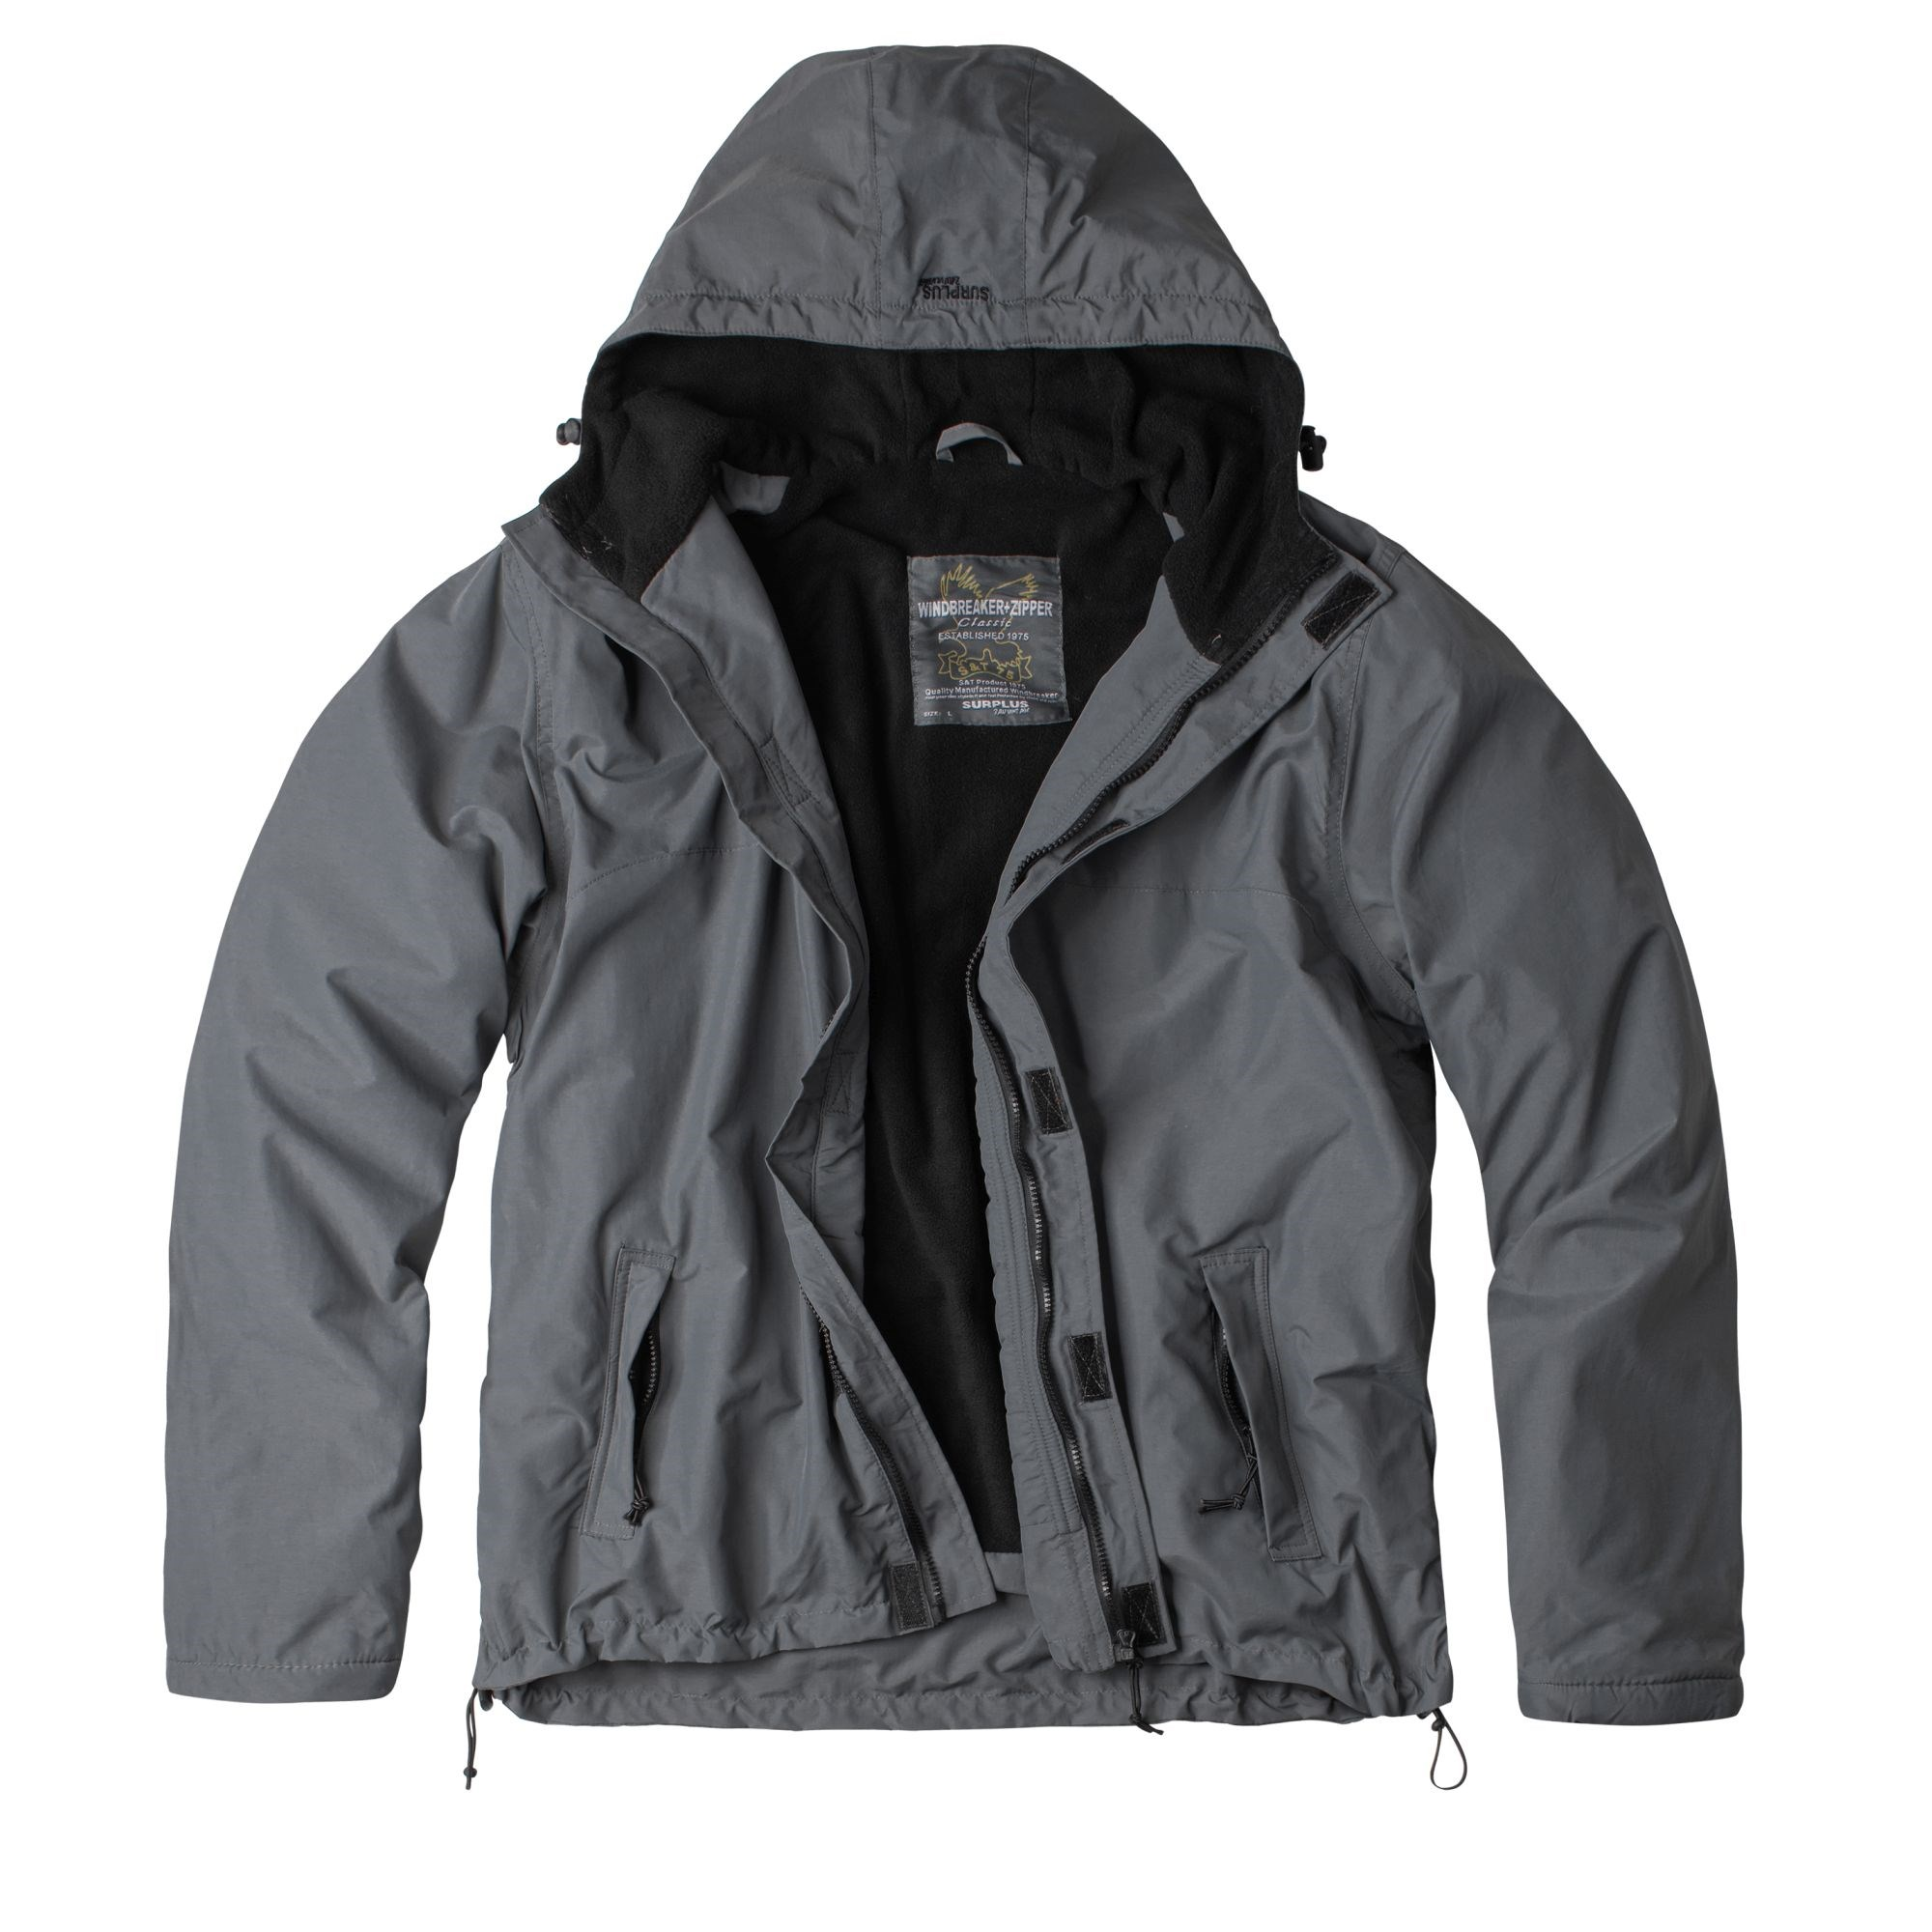 Bunda WINDBREAKER ZIPPER ŠEDÁ SURPLUS 20-7002-04 L-11